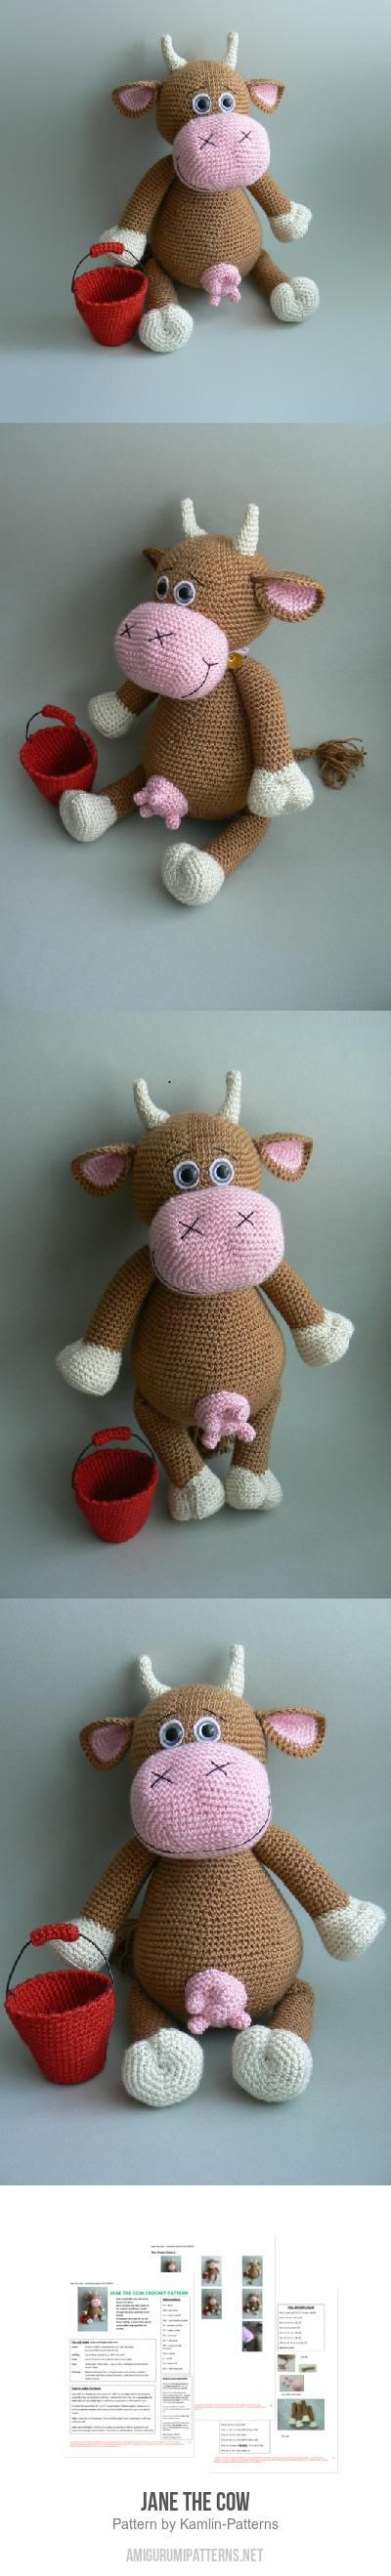 Jane The Cow Amigurumi Pattern